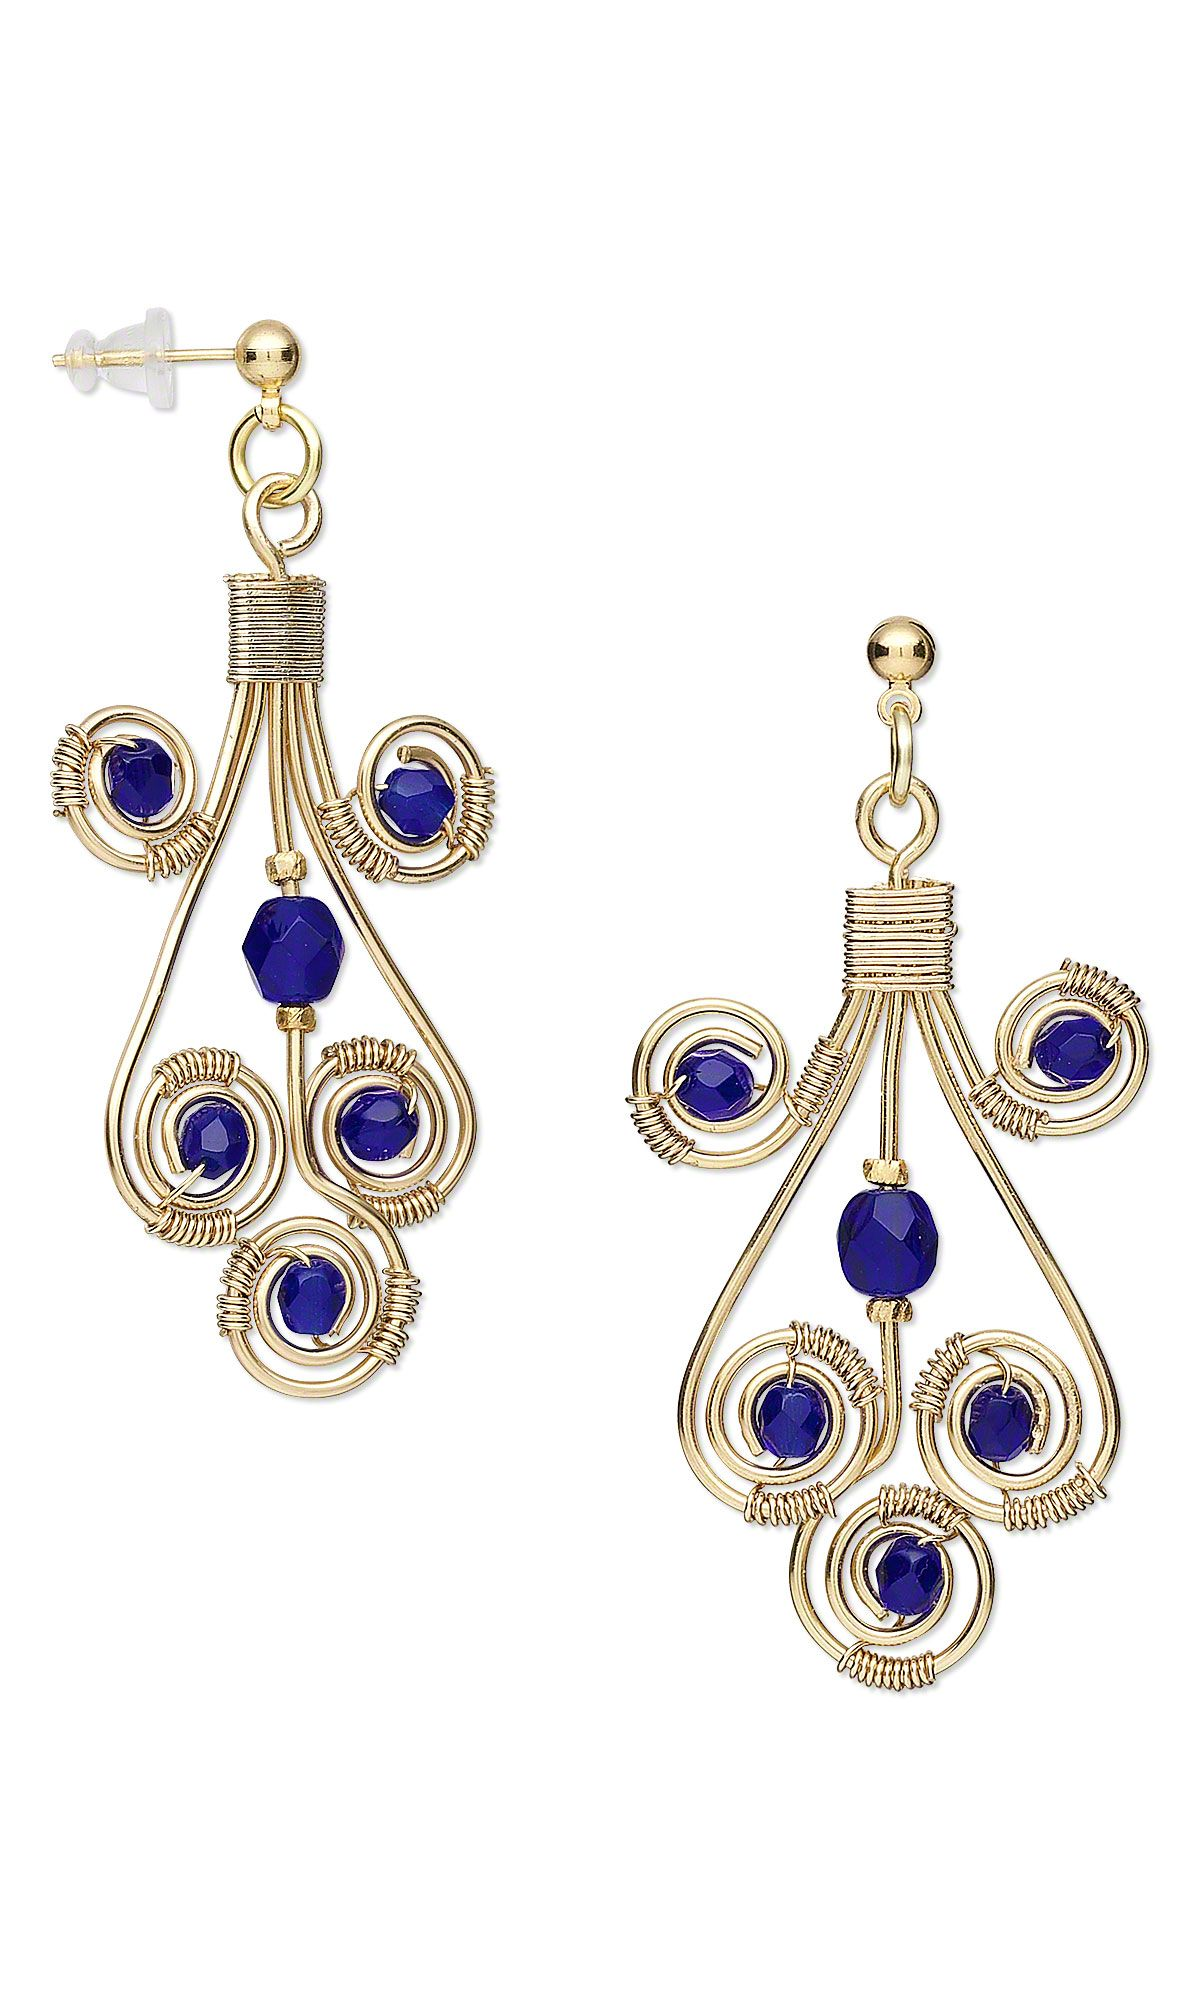 Earrings with Czech Fire-Polished Glass Beads and Wirework Gallery Of Designs - Fire Mountain Gems and Beads